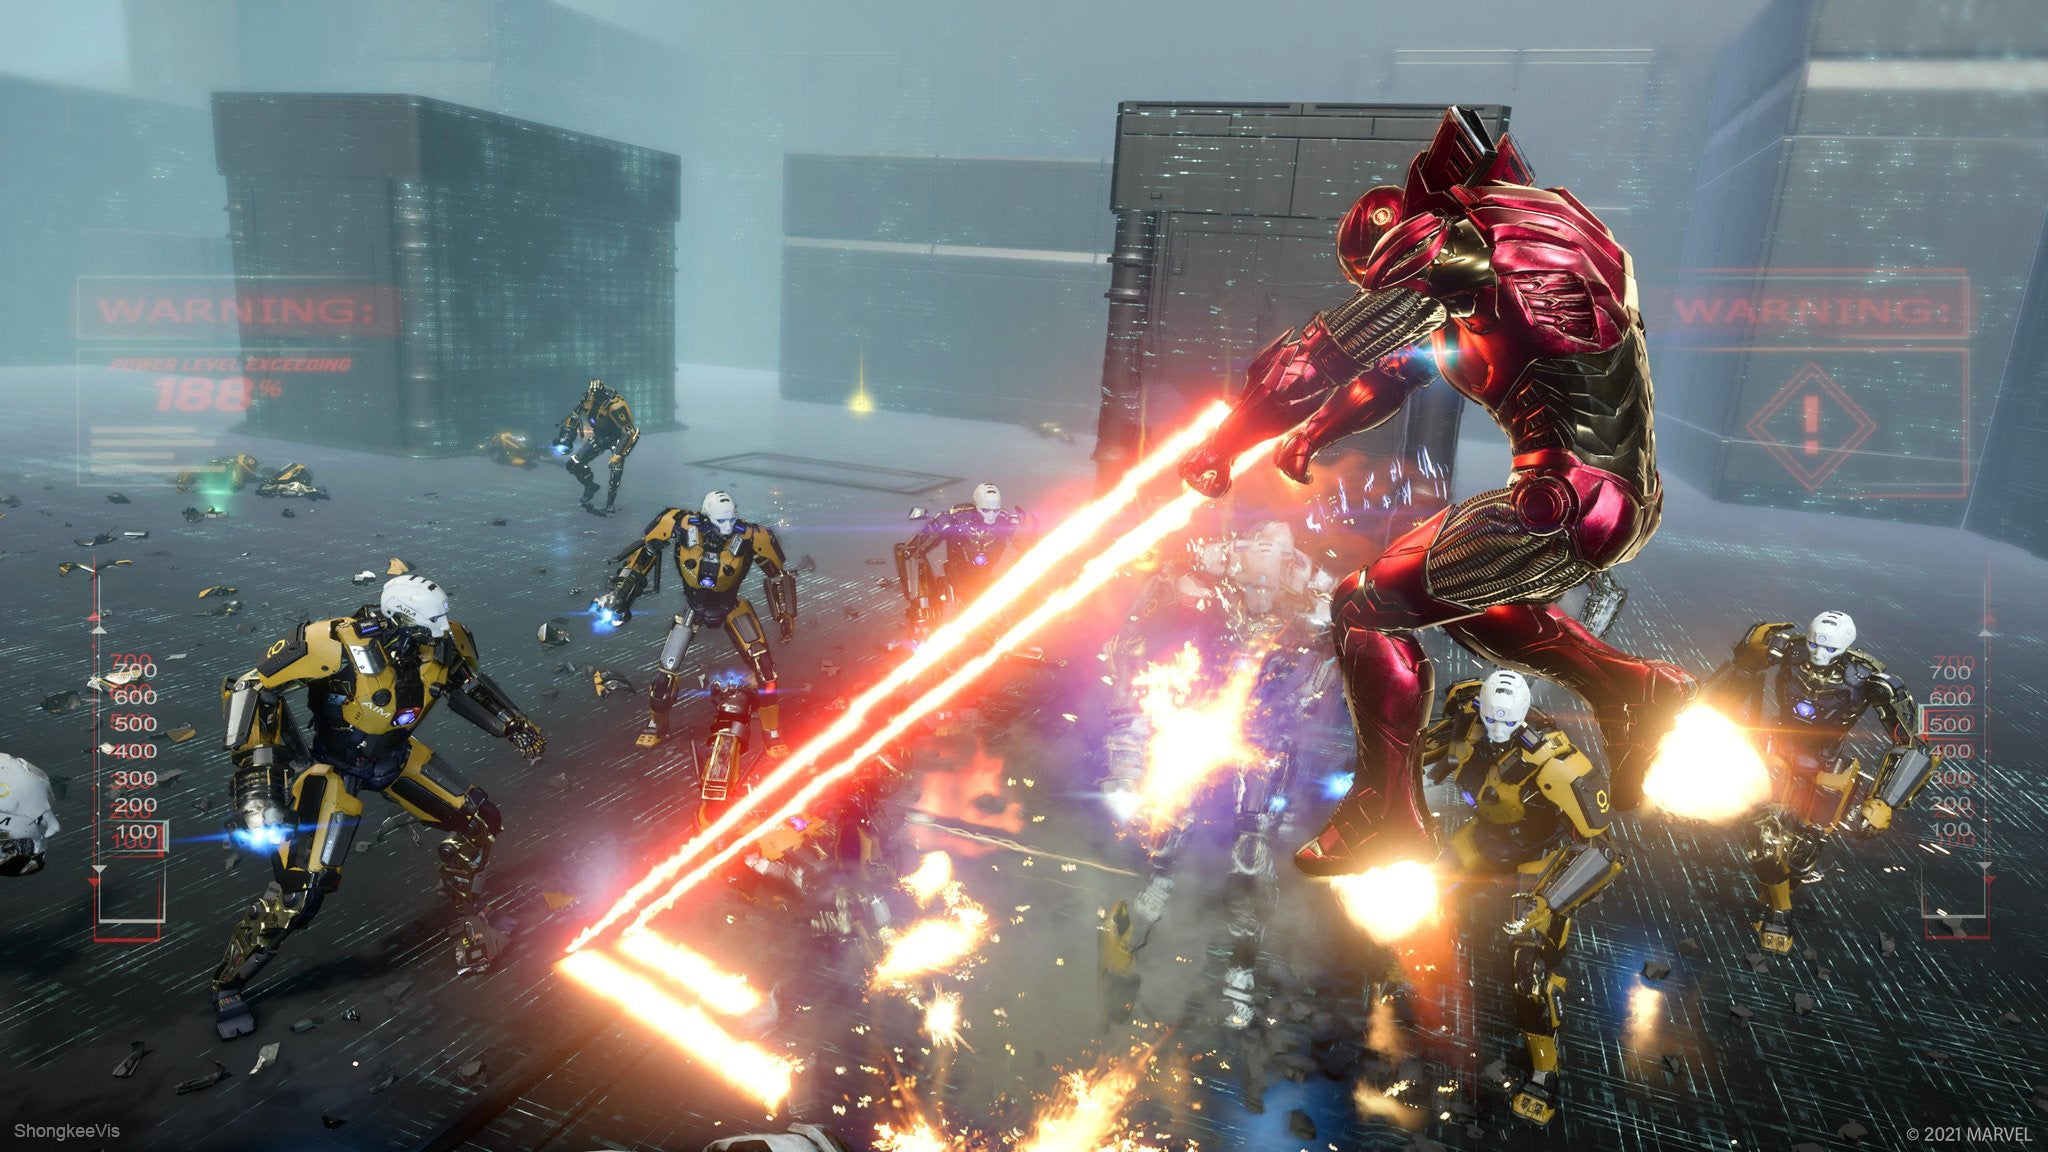 Iron Man unleashing his lasers on a group of AIM robots